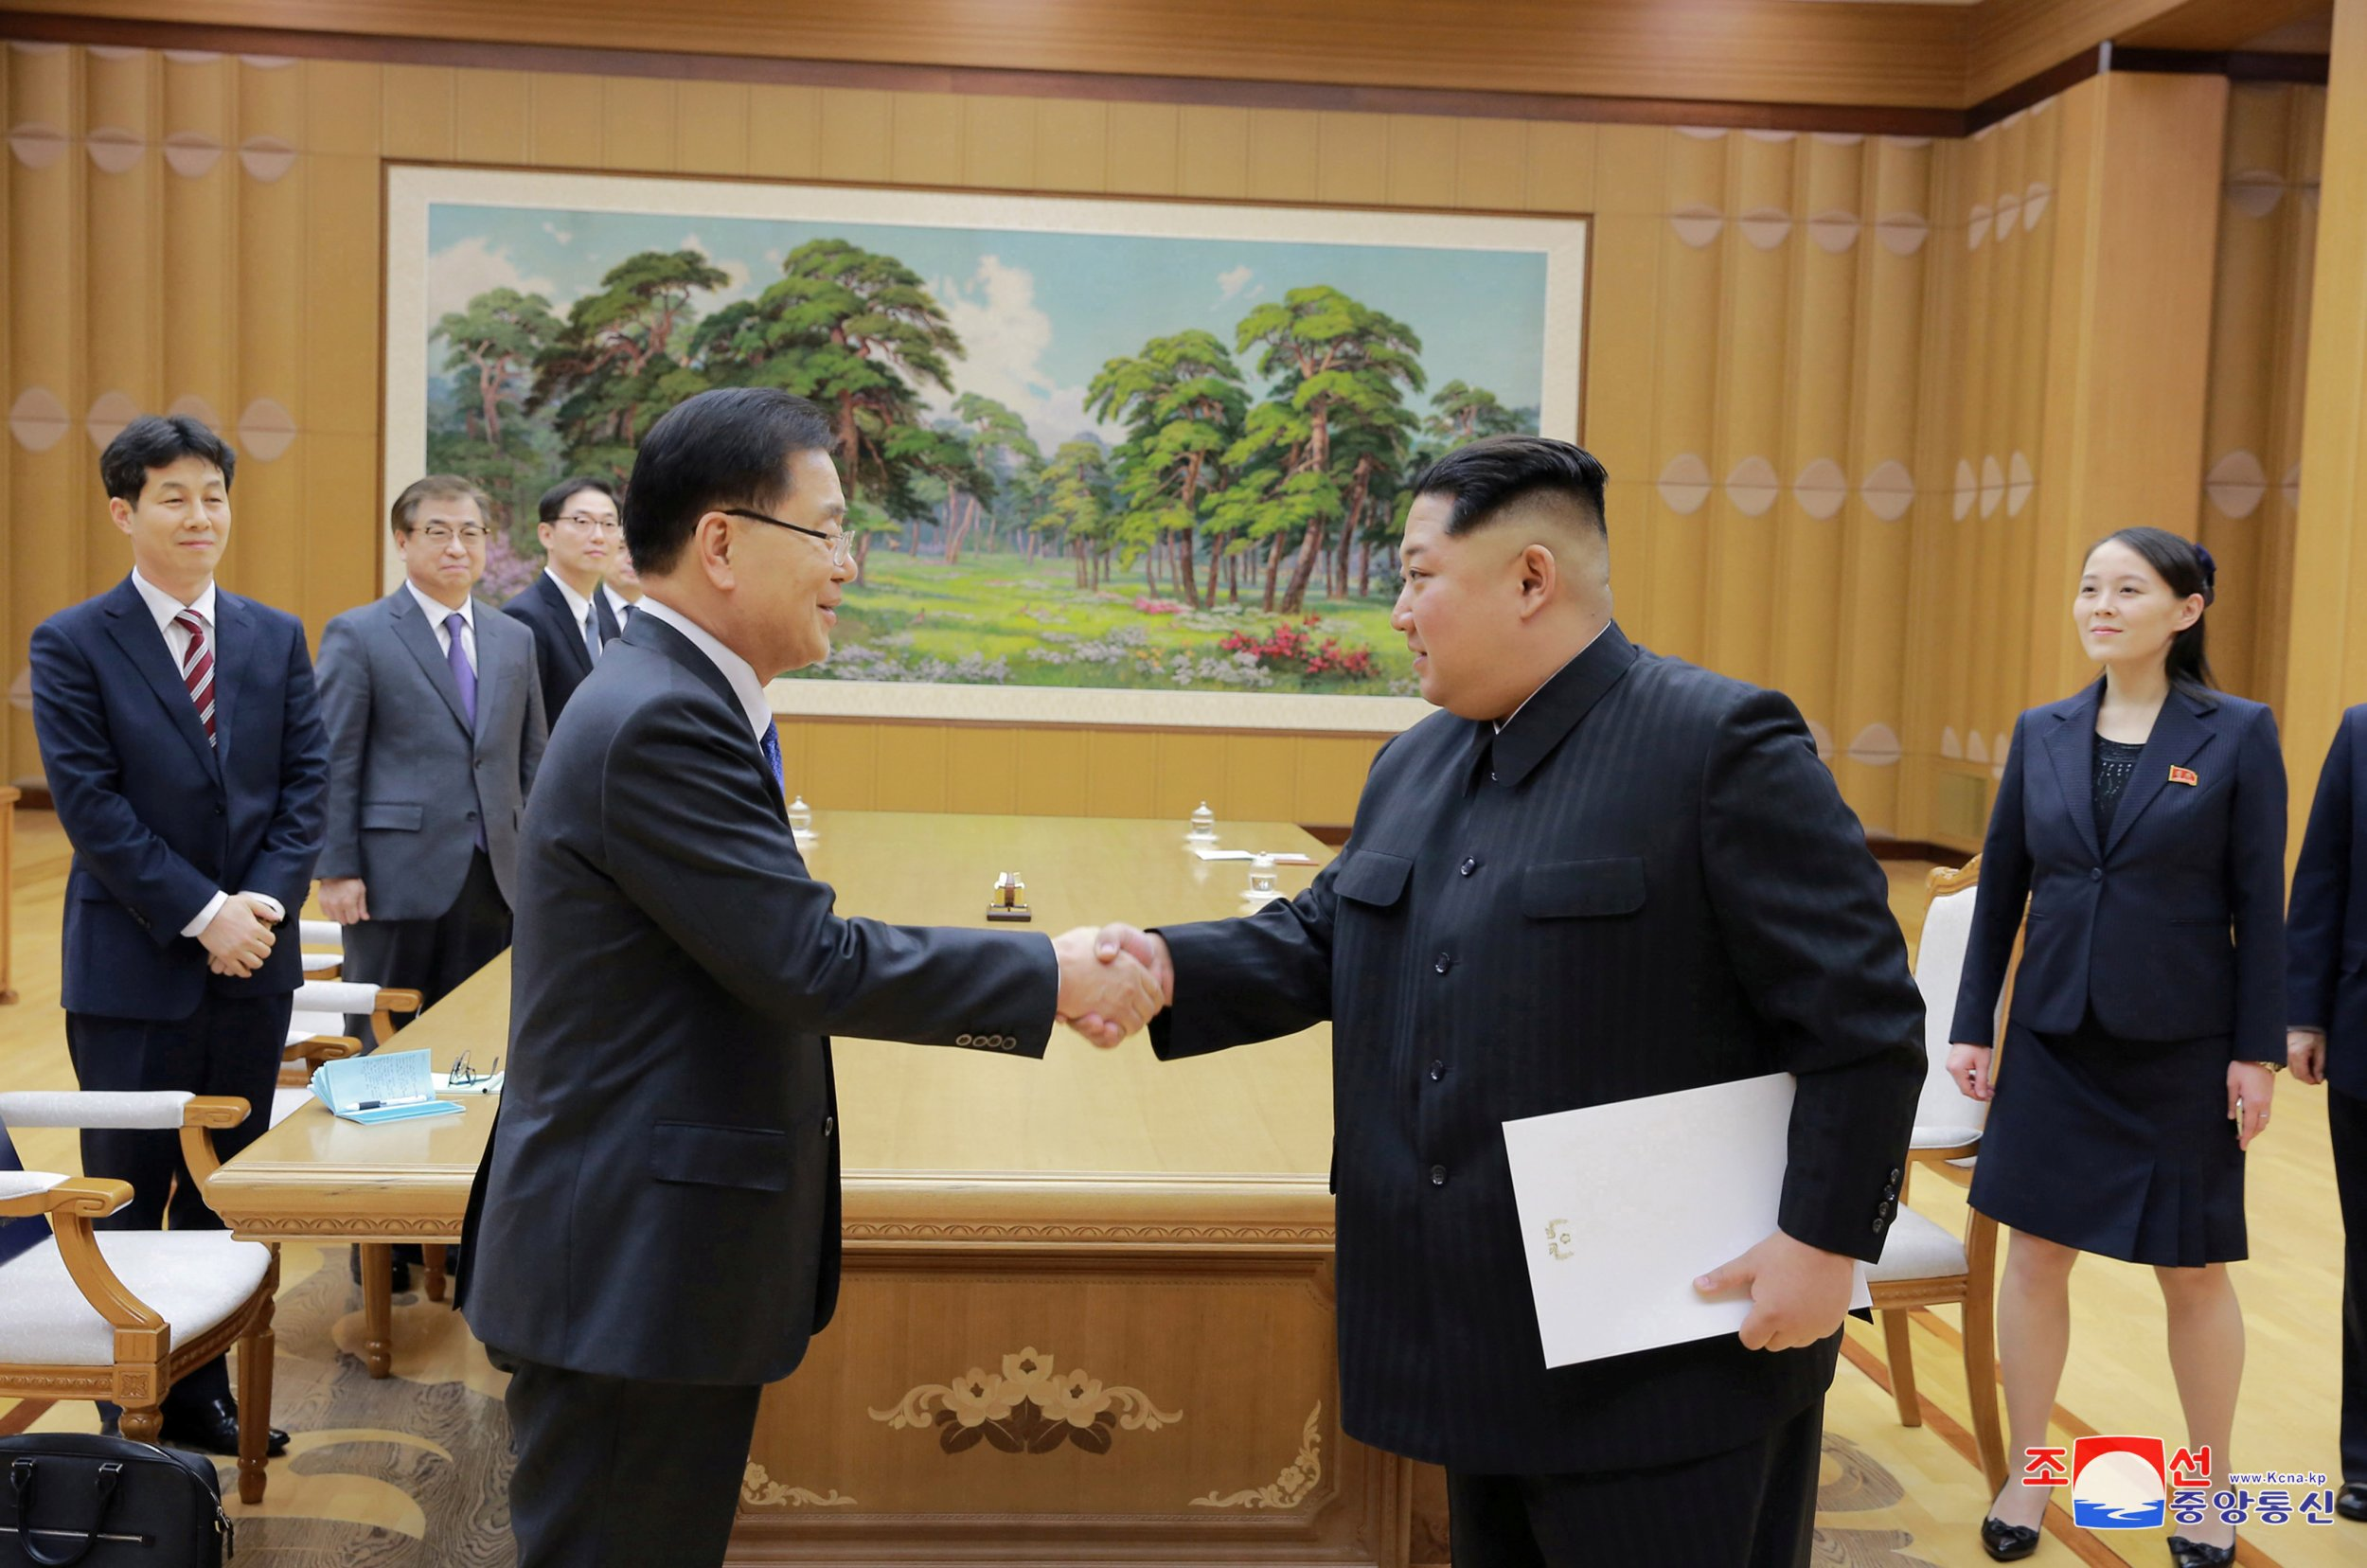 RTS1MB8X Kim Jong Un meets South Korean delegation Chung Eui-yong